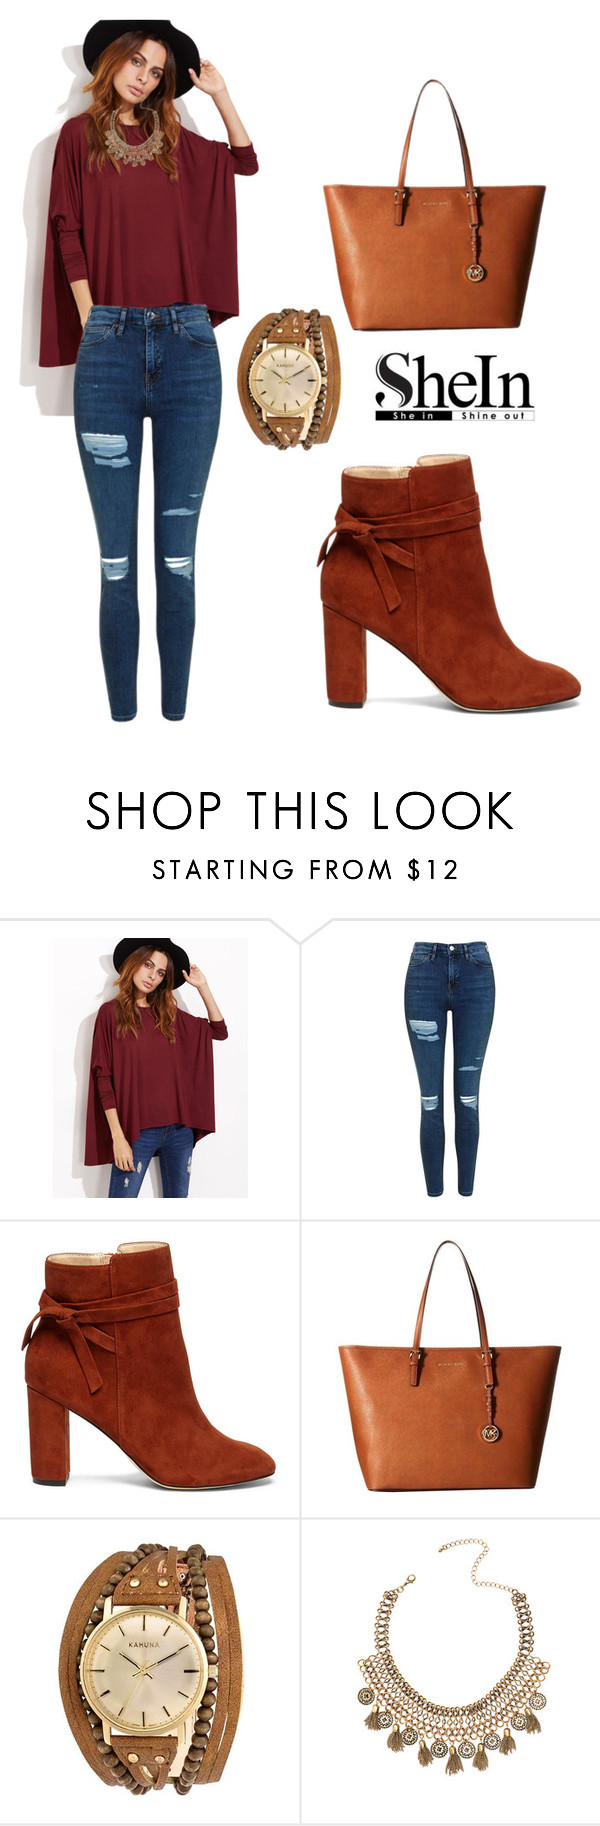 """""""SHEIN T-Shirt"""" by tania-alves ❤ liked on Polyvore featuring Topshop, Sole Society, MICHAEL Michael Kors and Kahuna"""